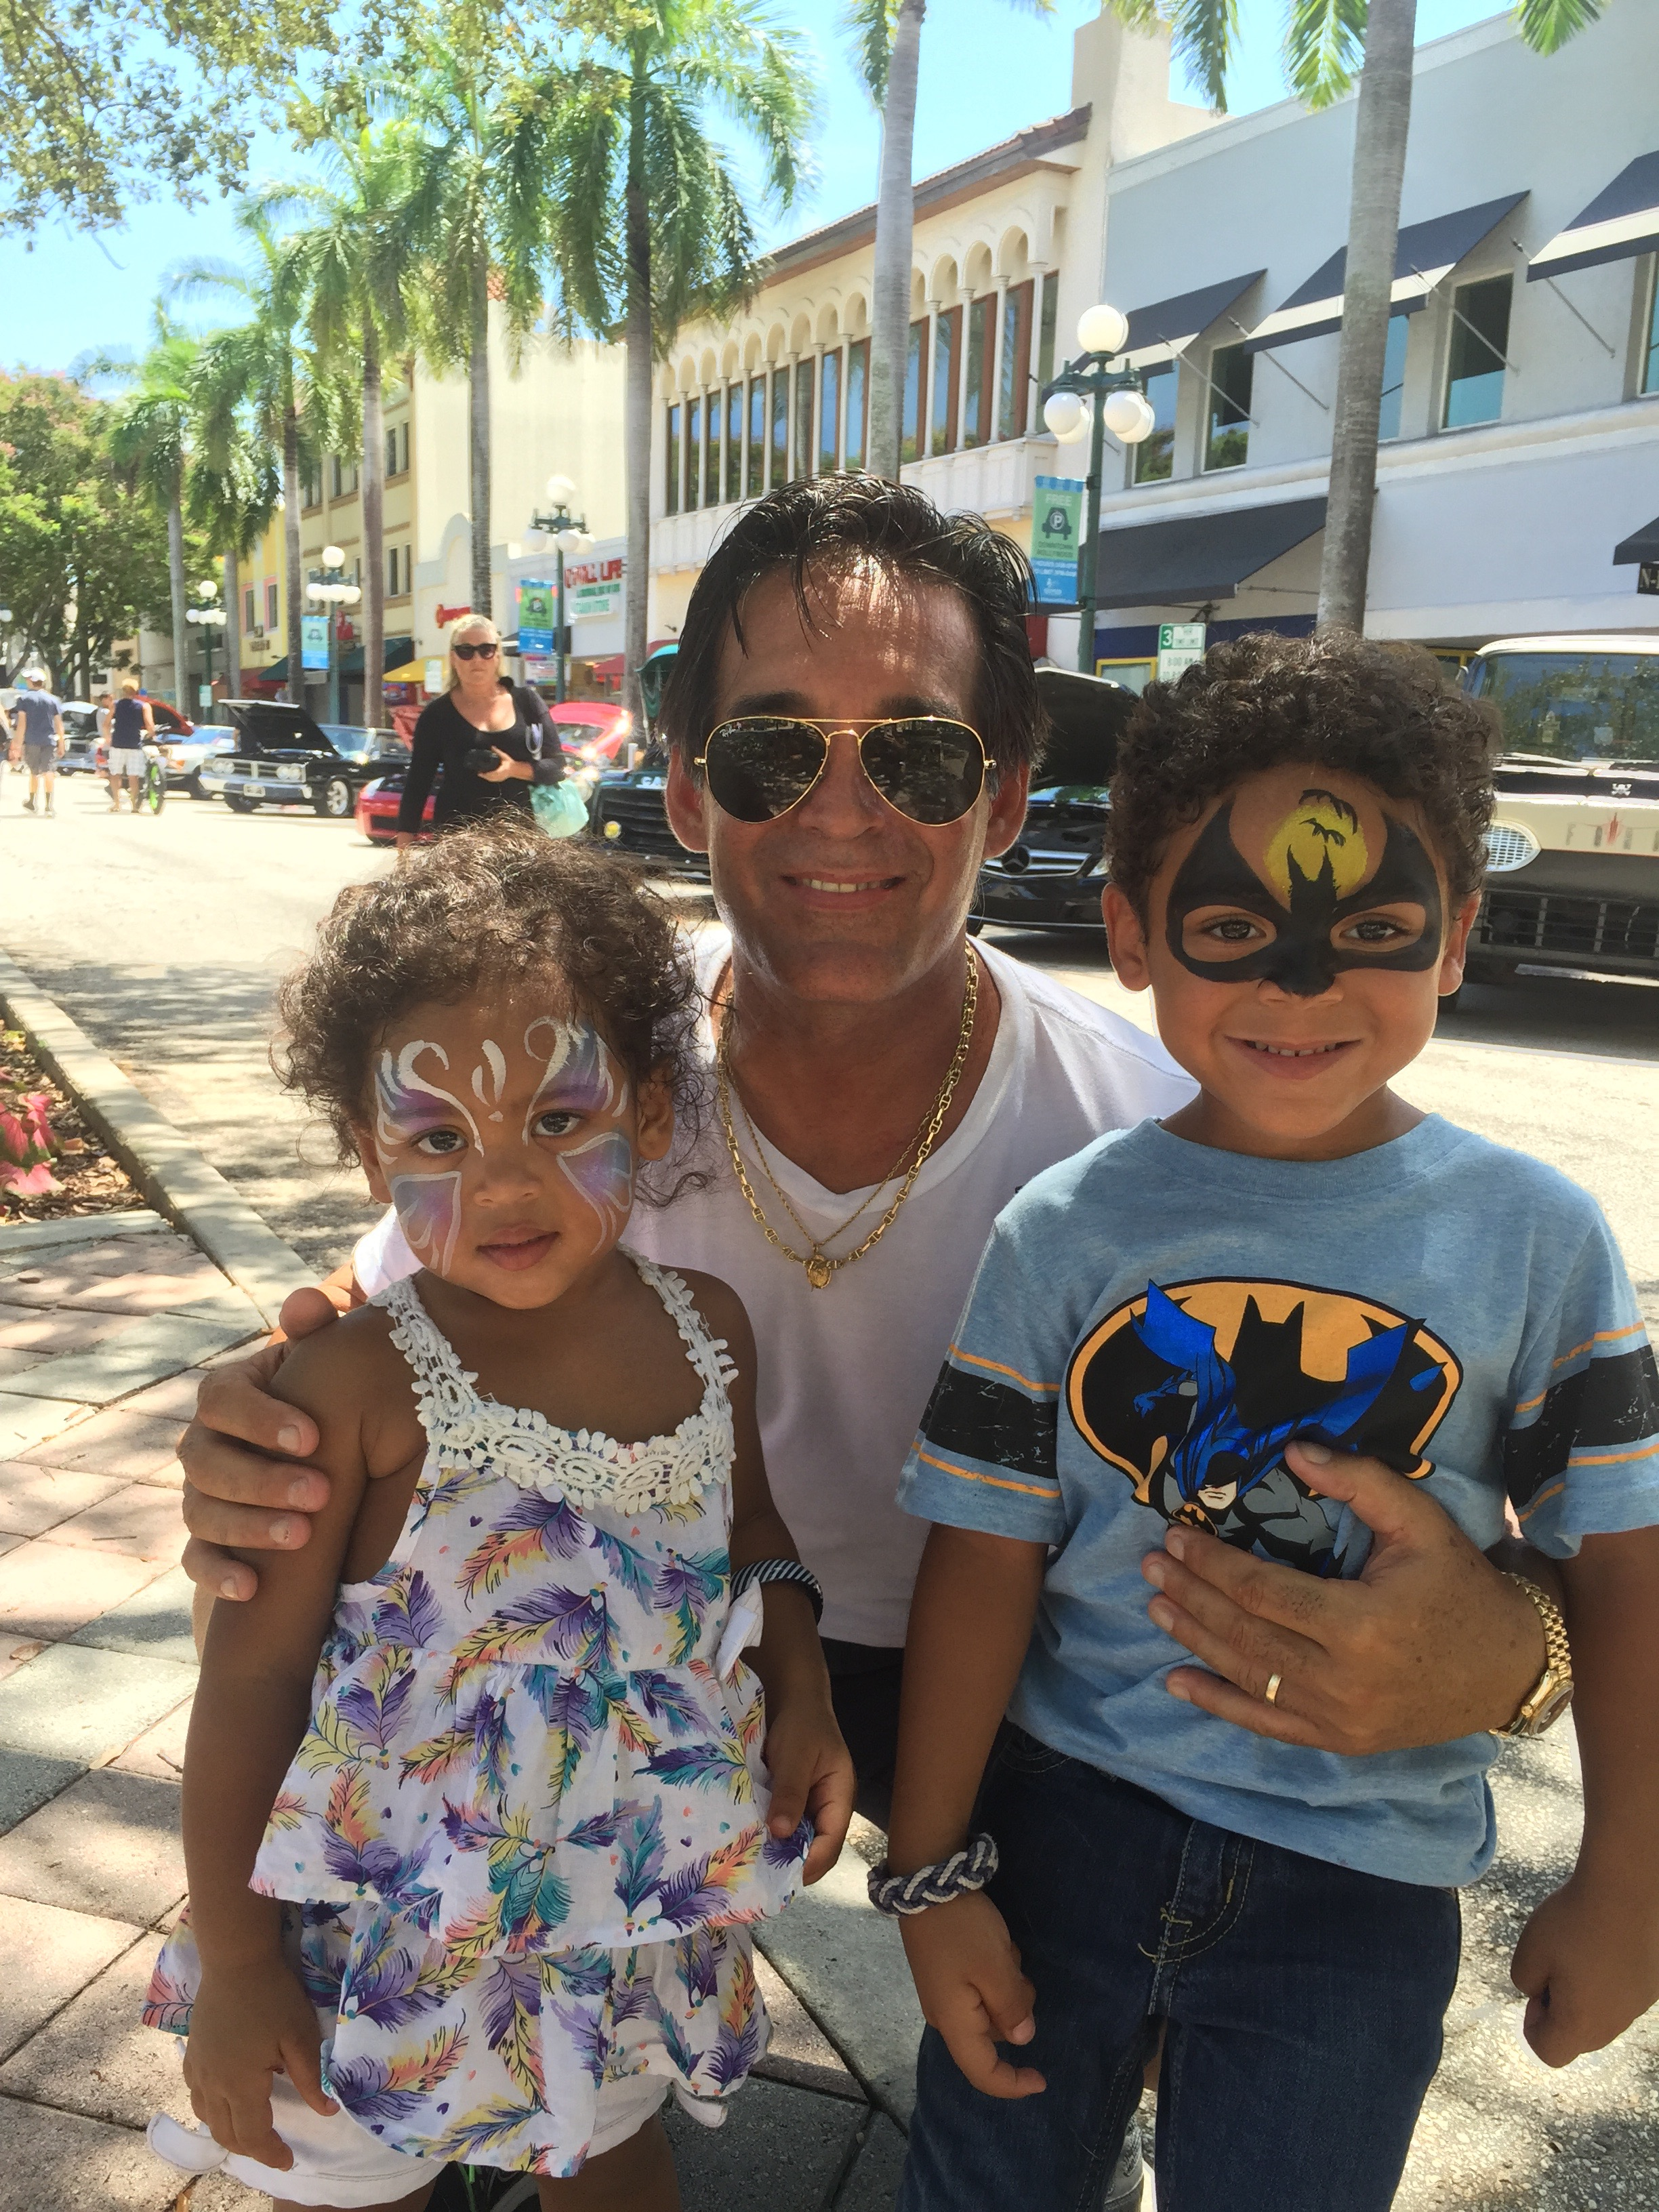 Facepainting fun with our 2 grandchildren